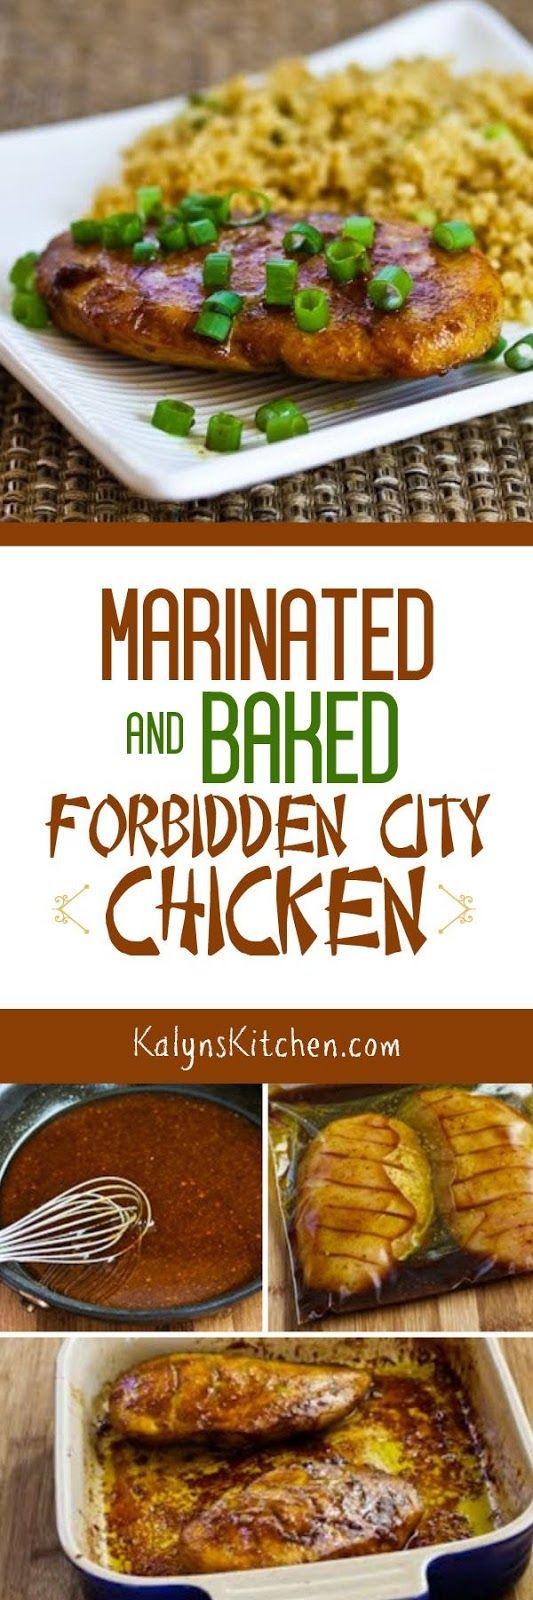 Marinated and Baked Forbidden City Chicken is an easy and tasty dinner ...